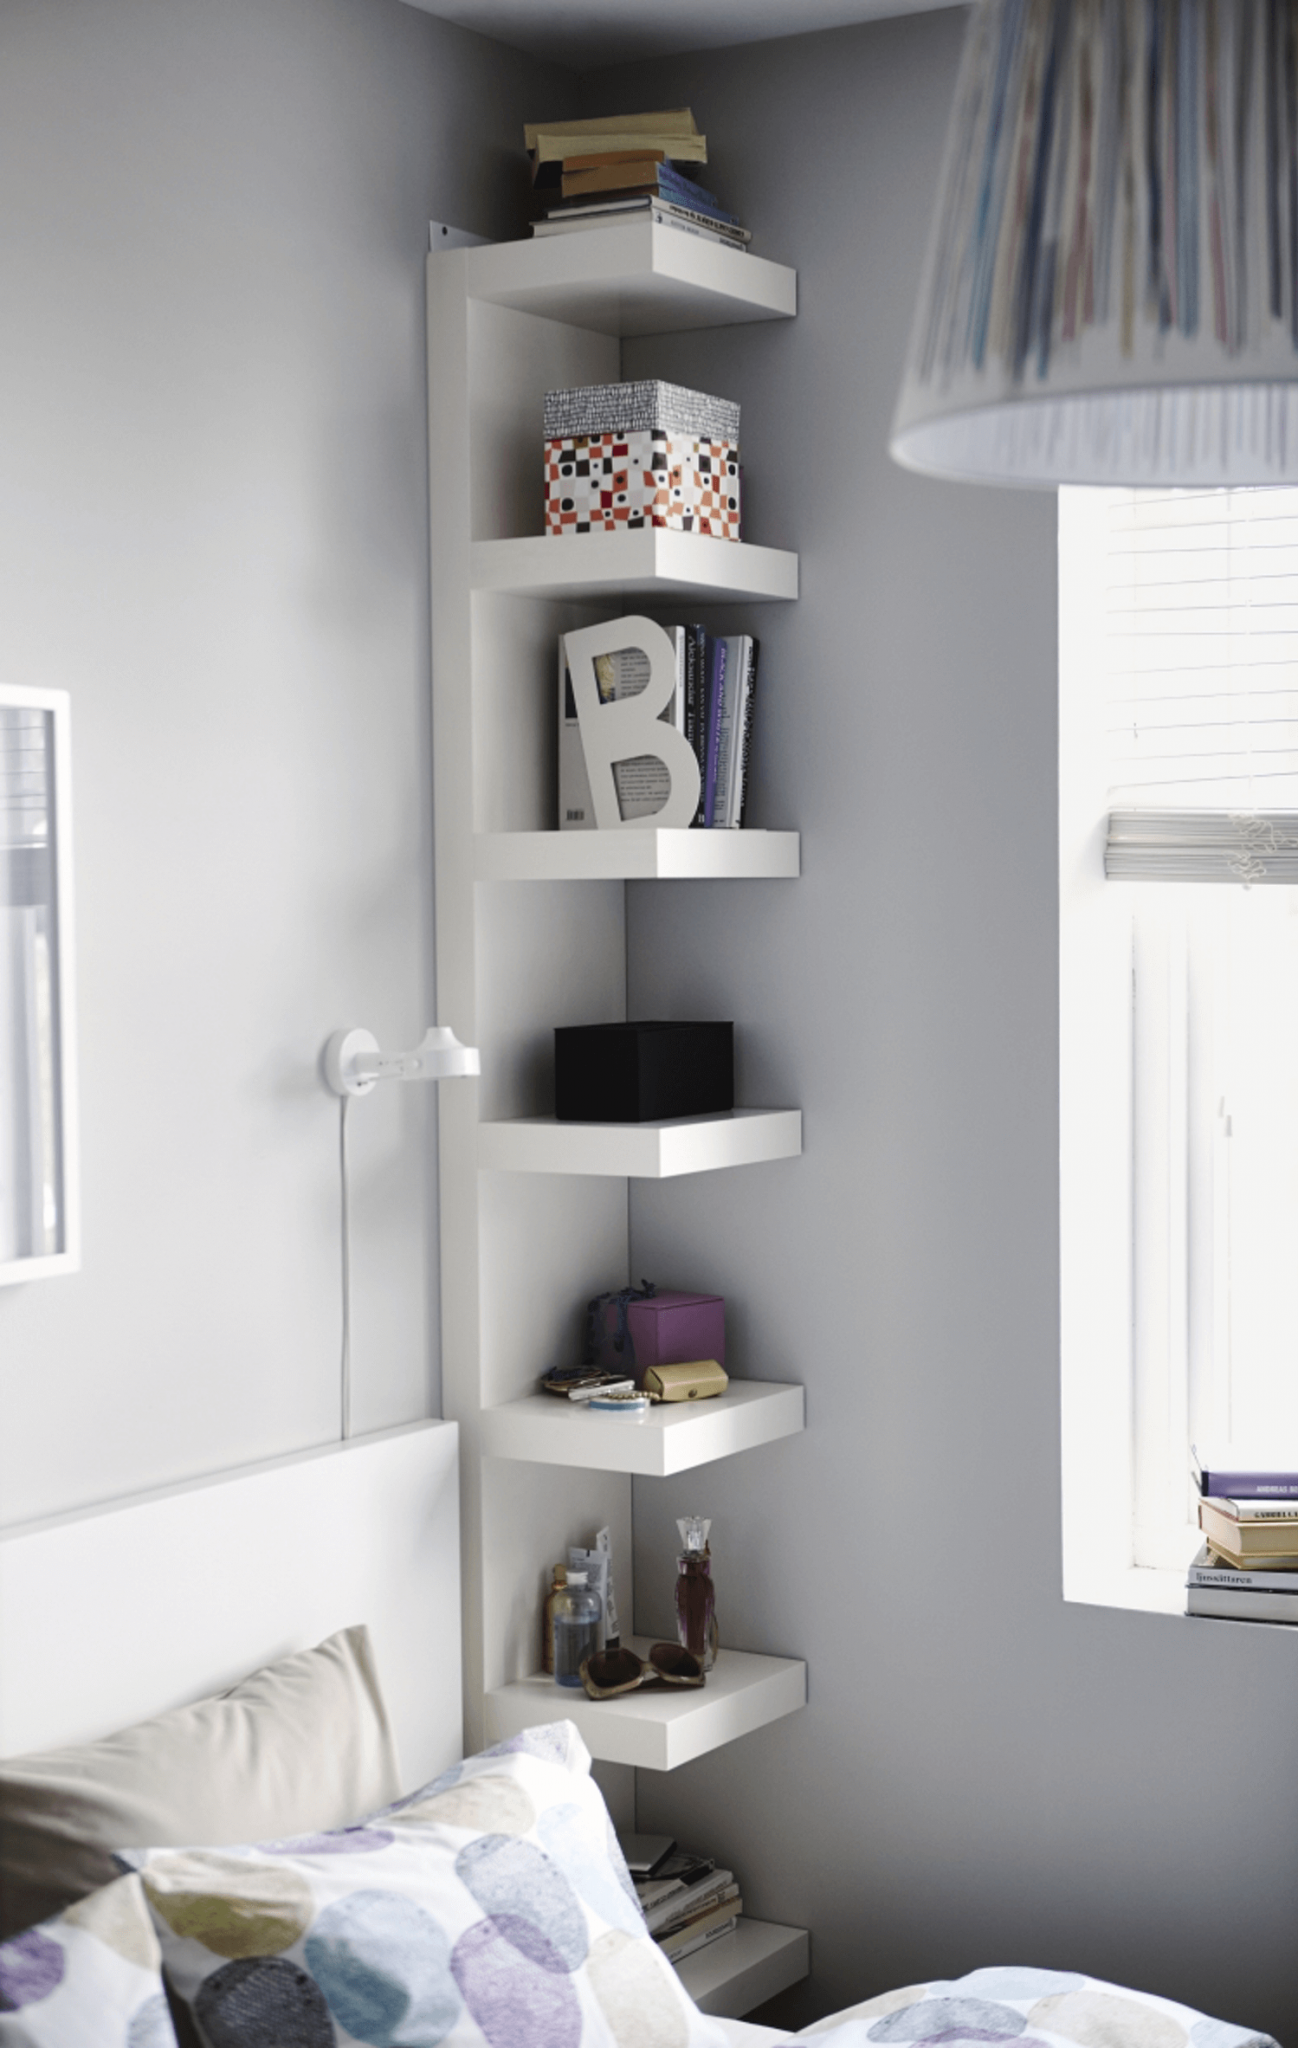 37 IKEA Lack Shelves Ideas And Hacks | Stanza da letto